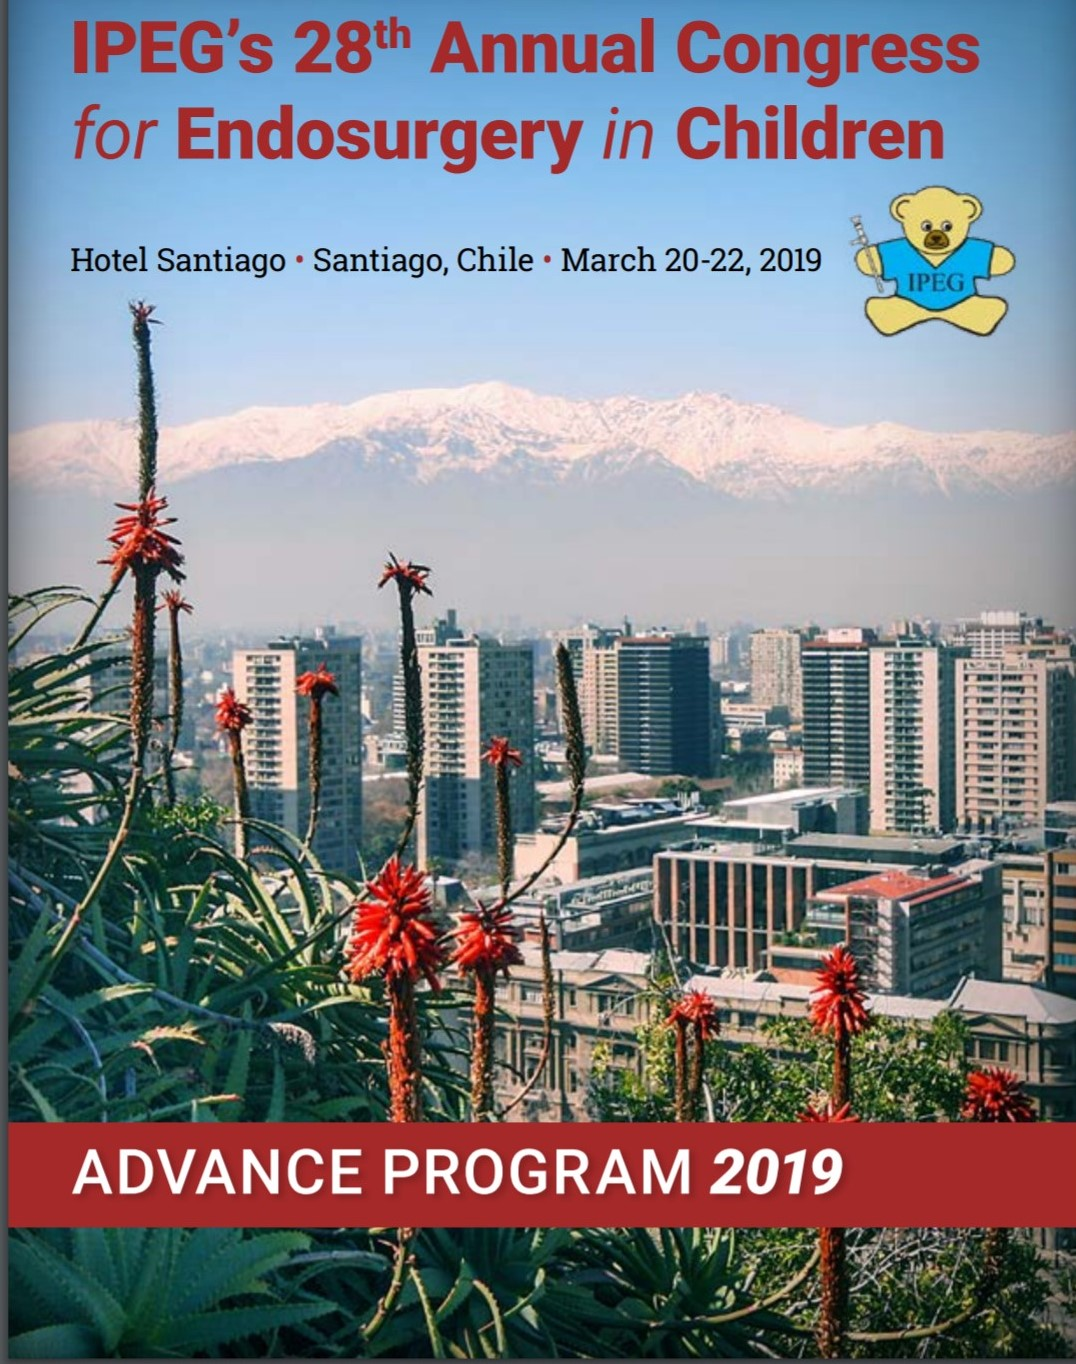 28th. Annual Congress for Endosurgery in Chiledren IPEG @ Hotel Santiago